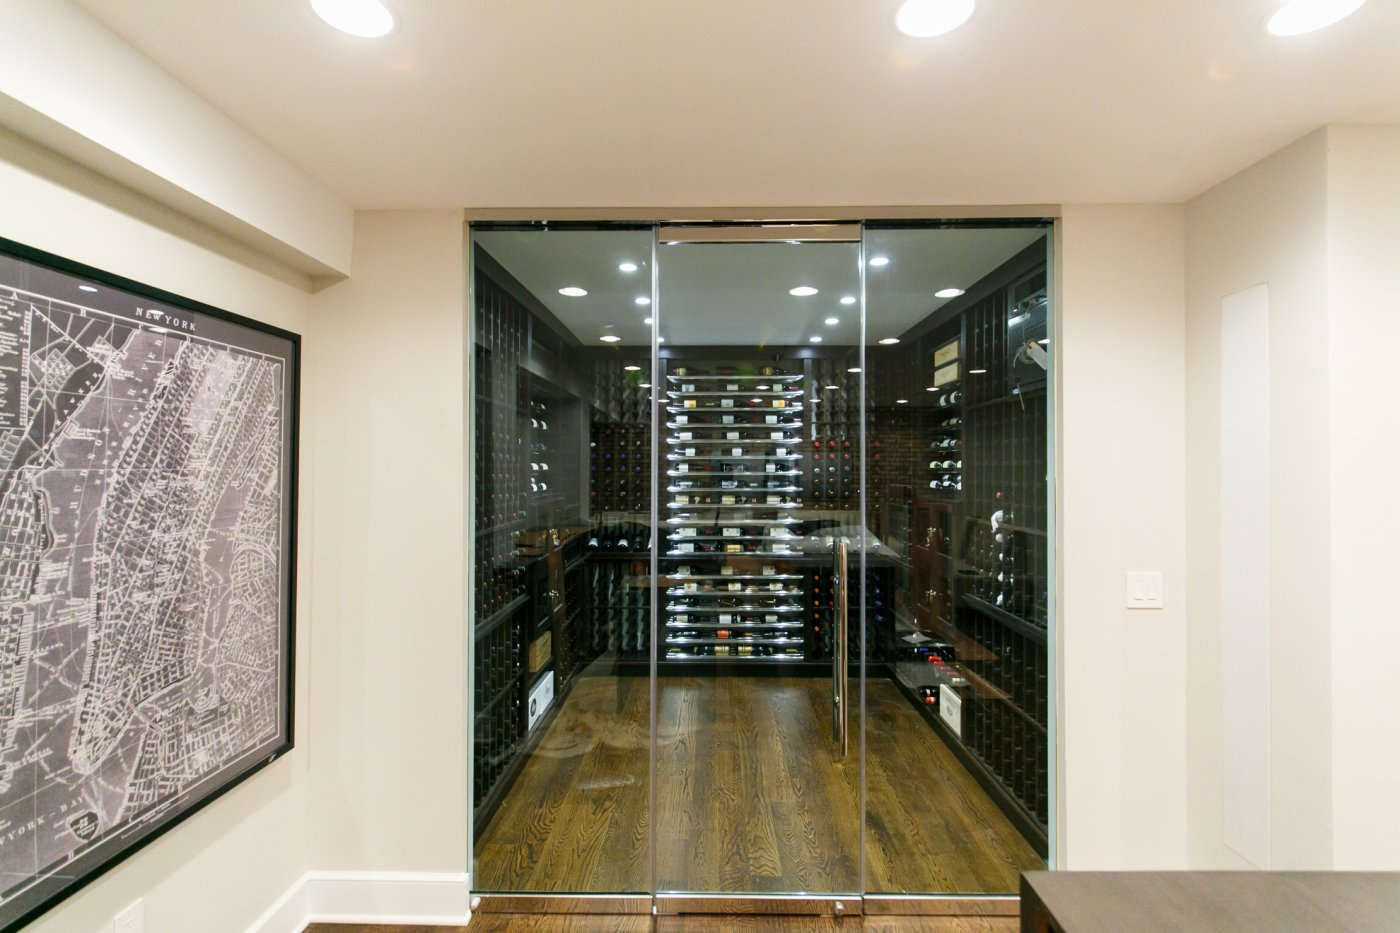 Joseph curtis custom wine cellars of north plainfield Cellar designs